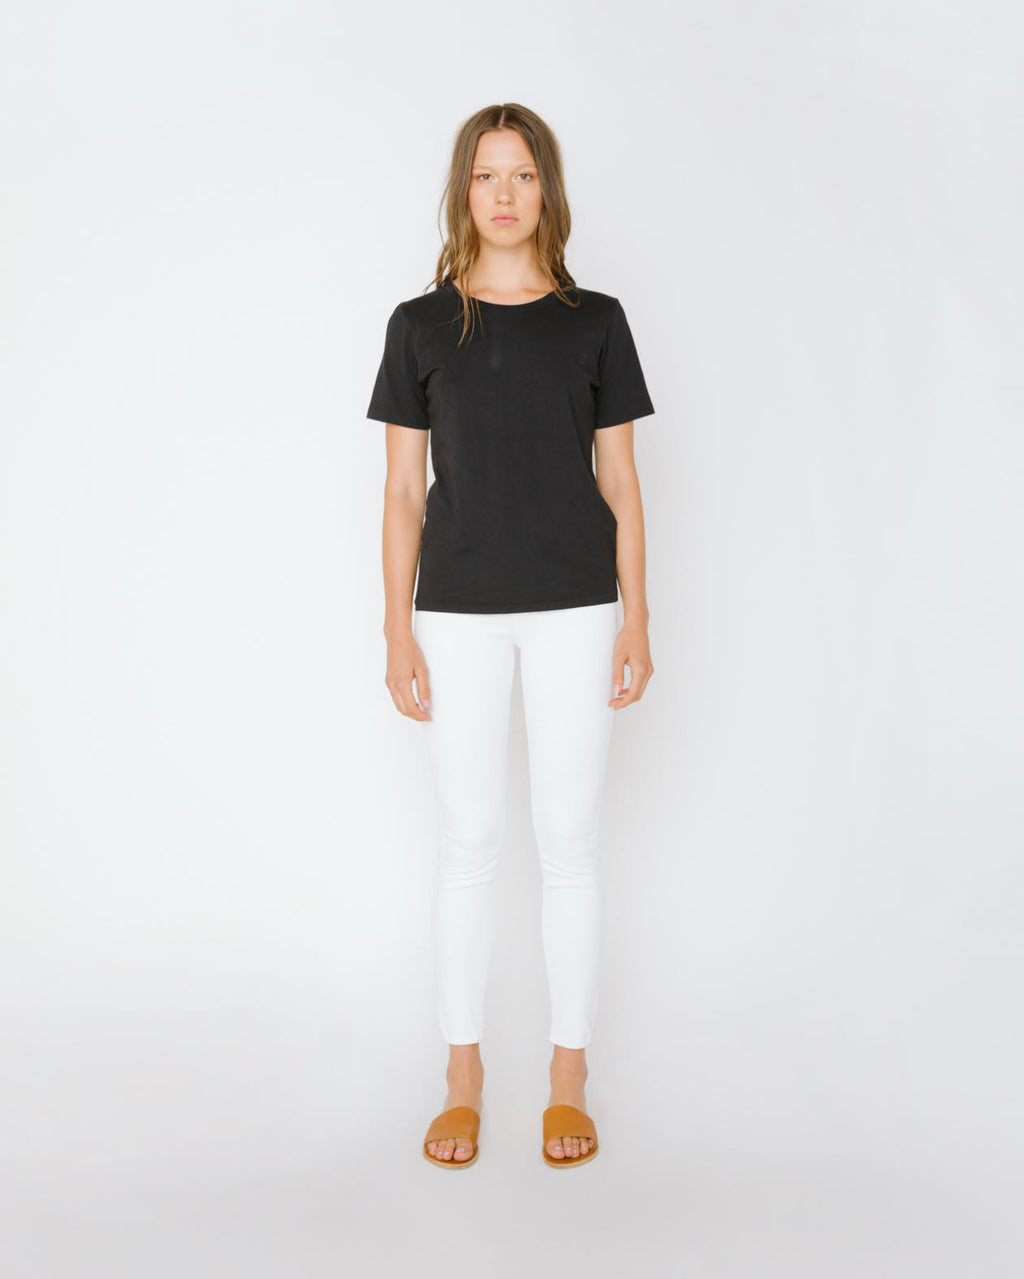 The Short Sleeve Crew Neck Tee in Black